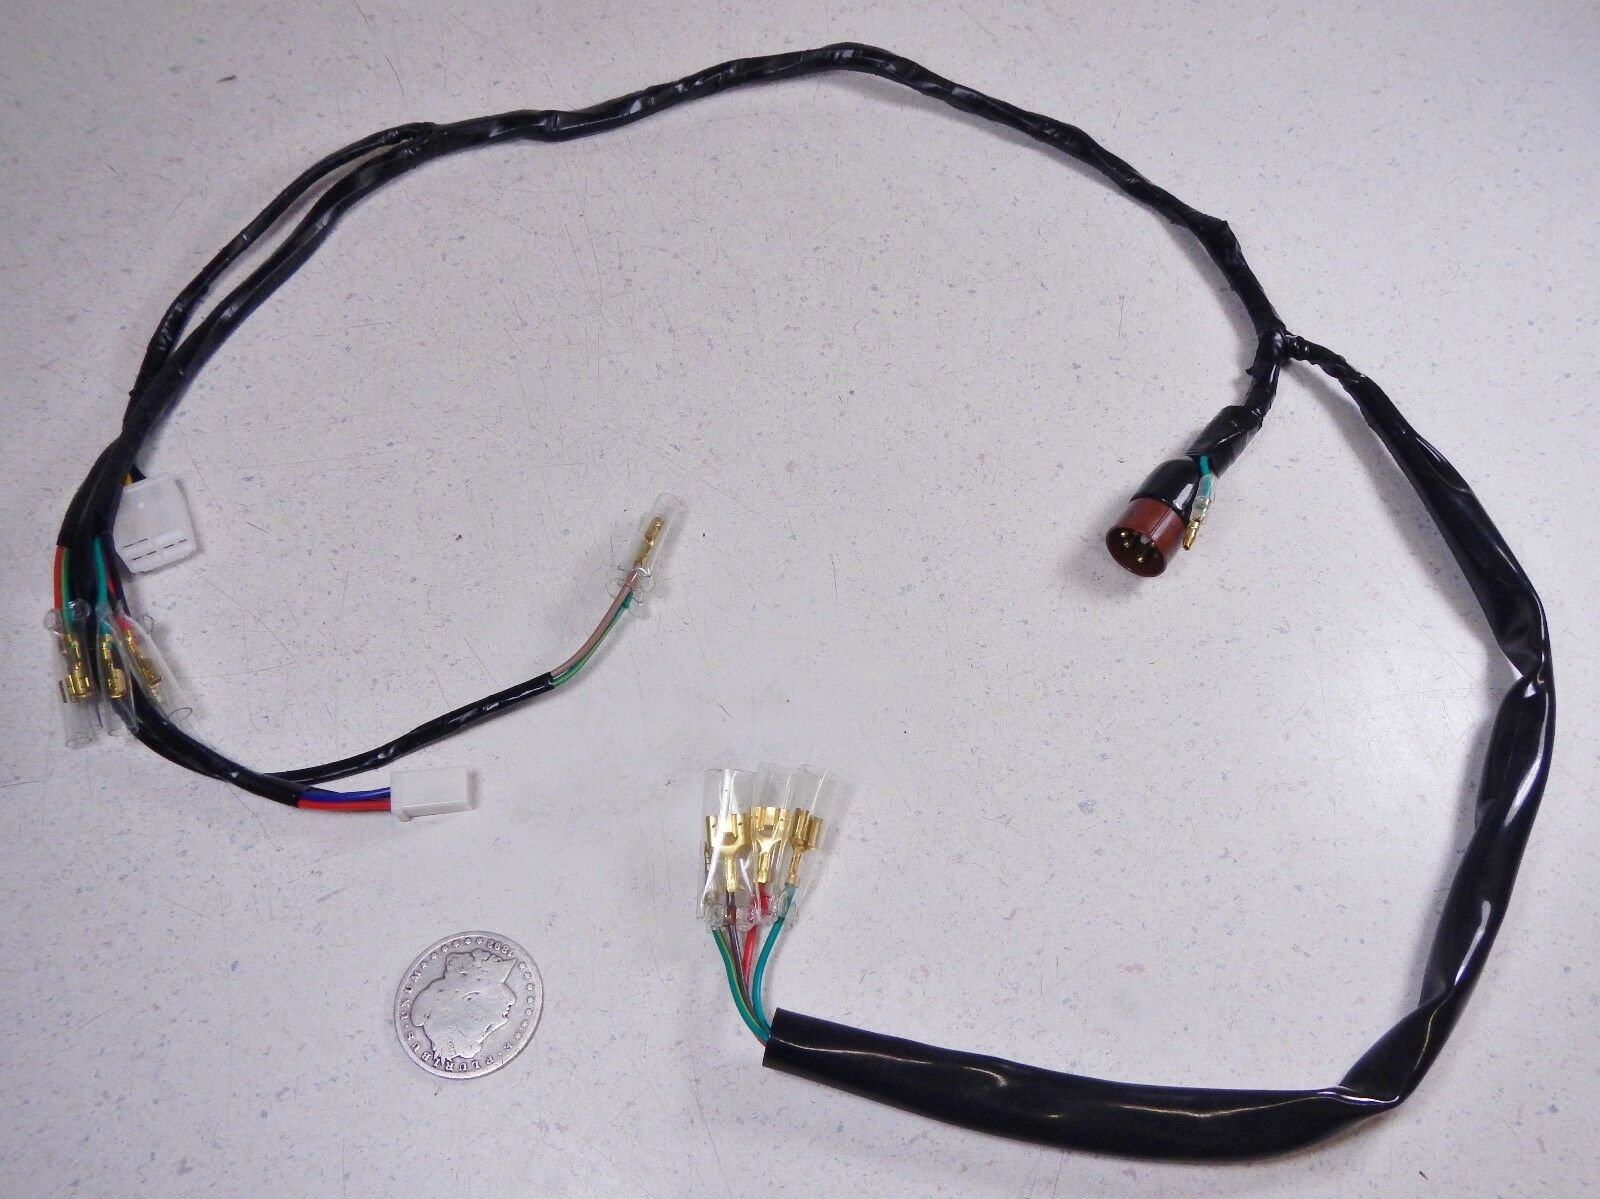 Honda Ct70 70 Ct70h K0 Trail St50 St 50 Dax Main Wiring Harness 0529 1 Of 6only Available